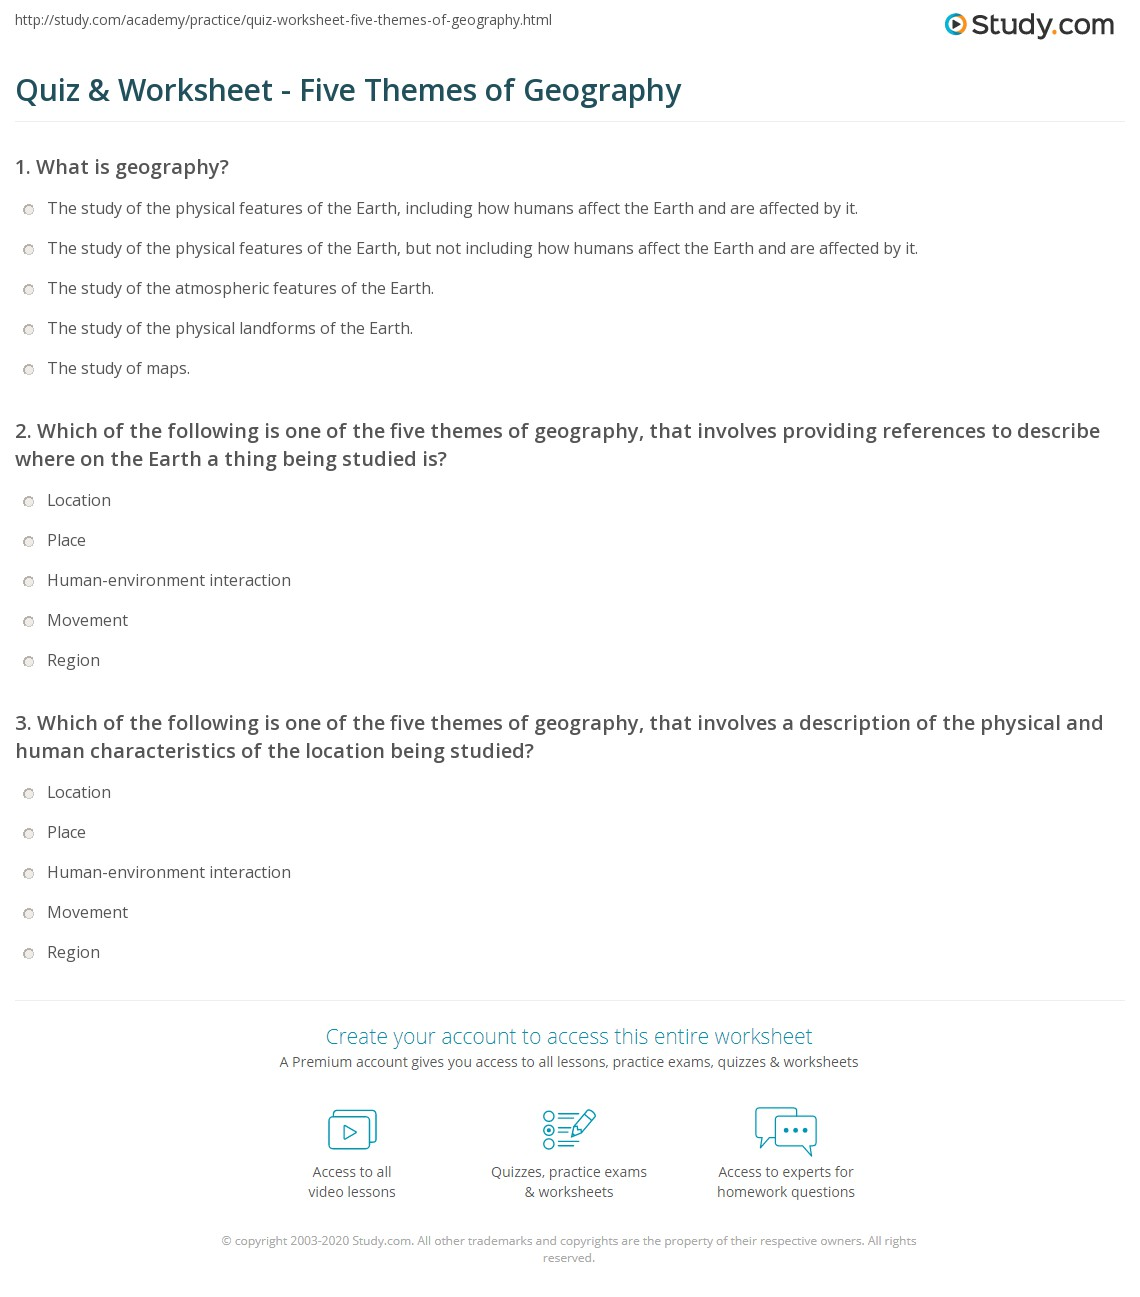 Quiz & Worksheet - Five Themes of Geography | Study.com